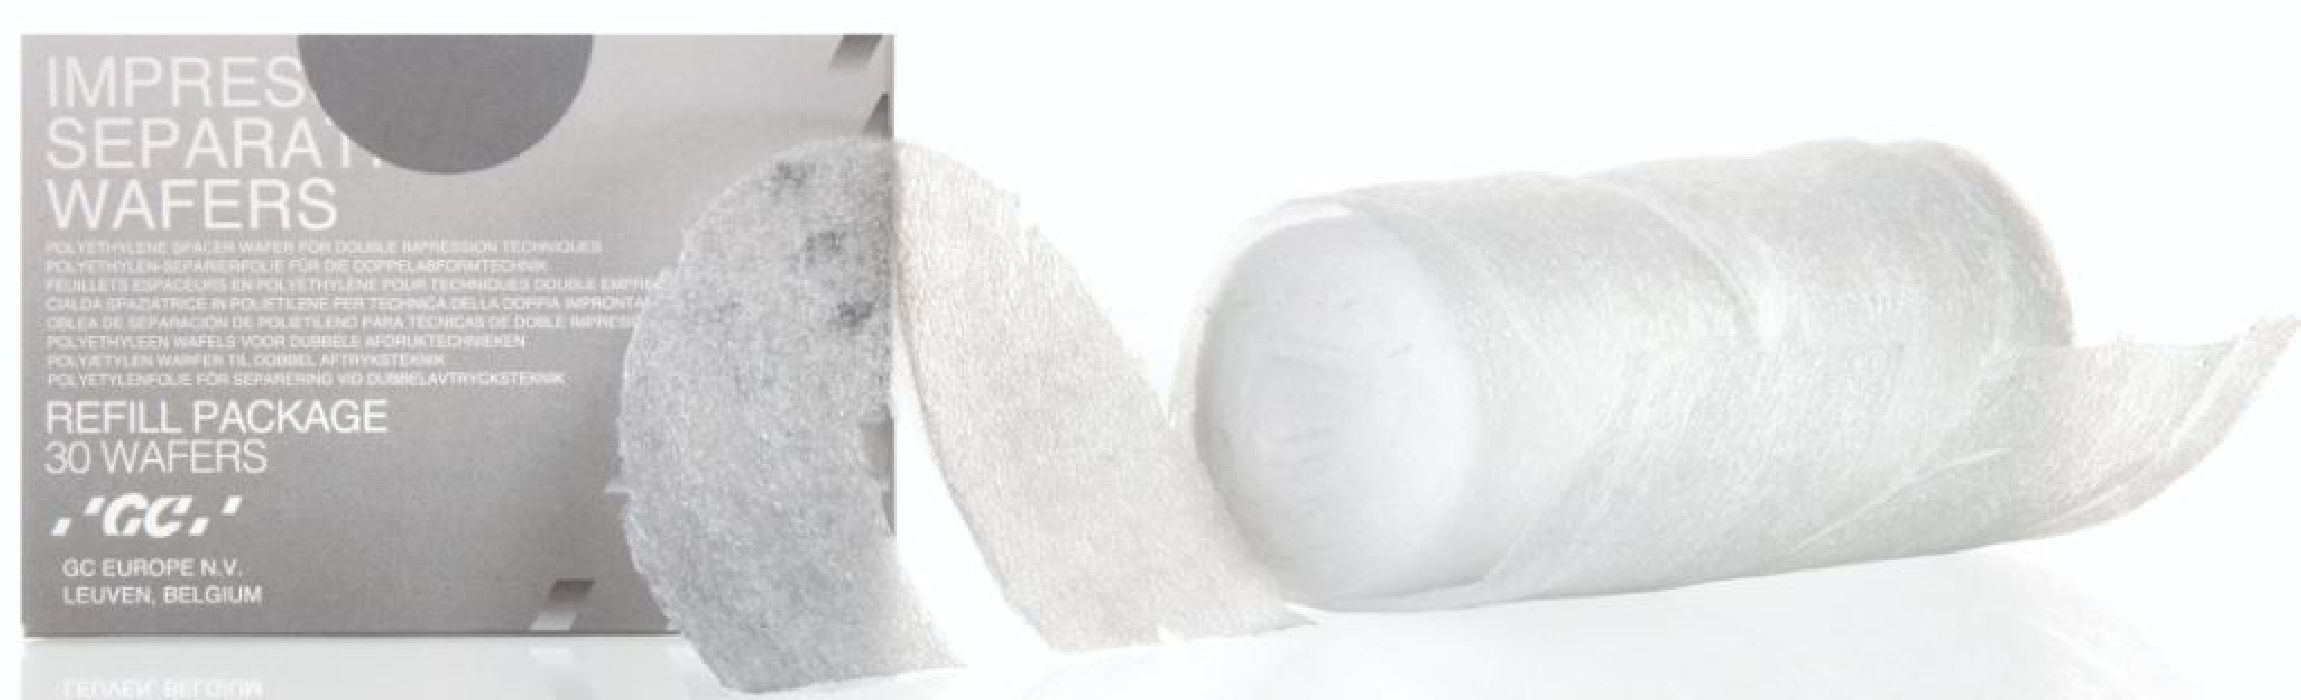 An image of Impression seperation wafer